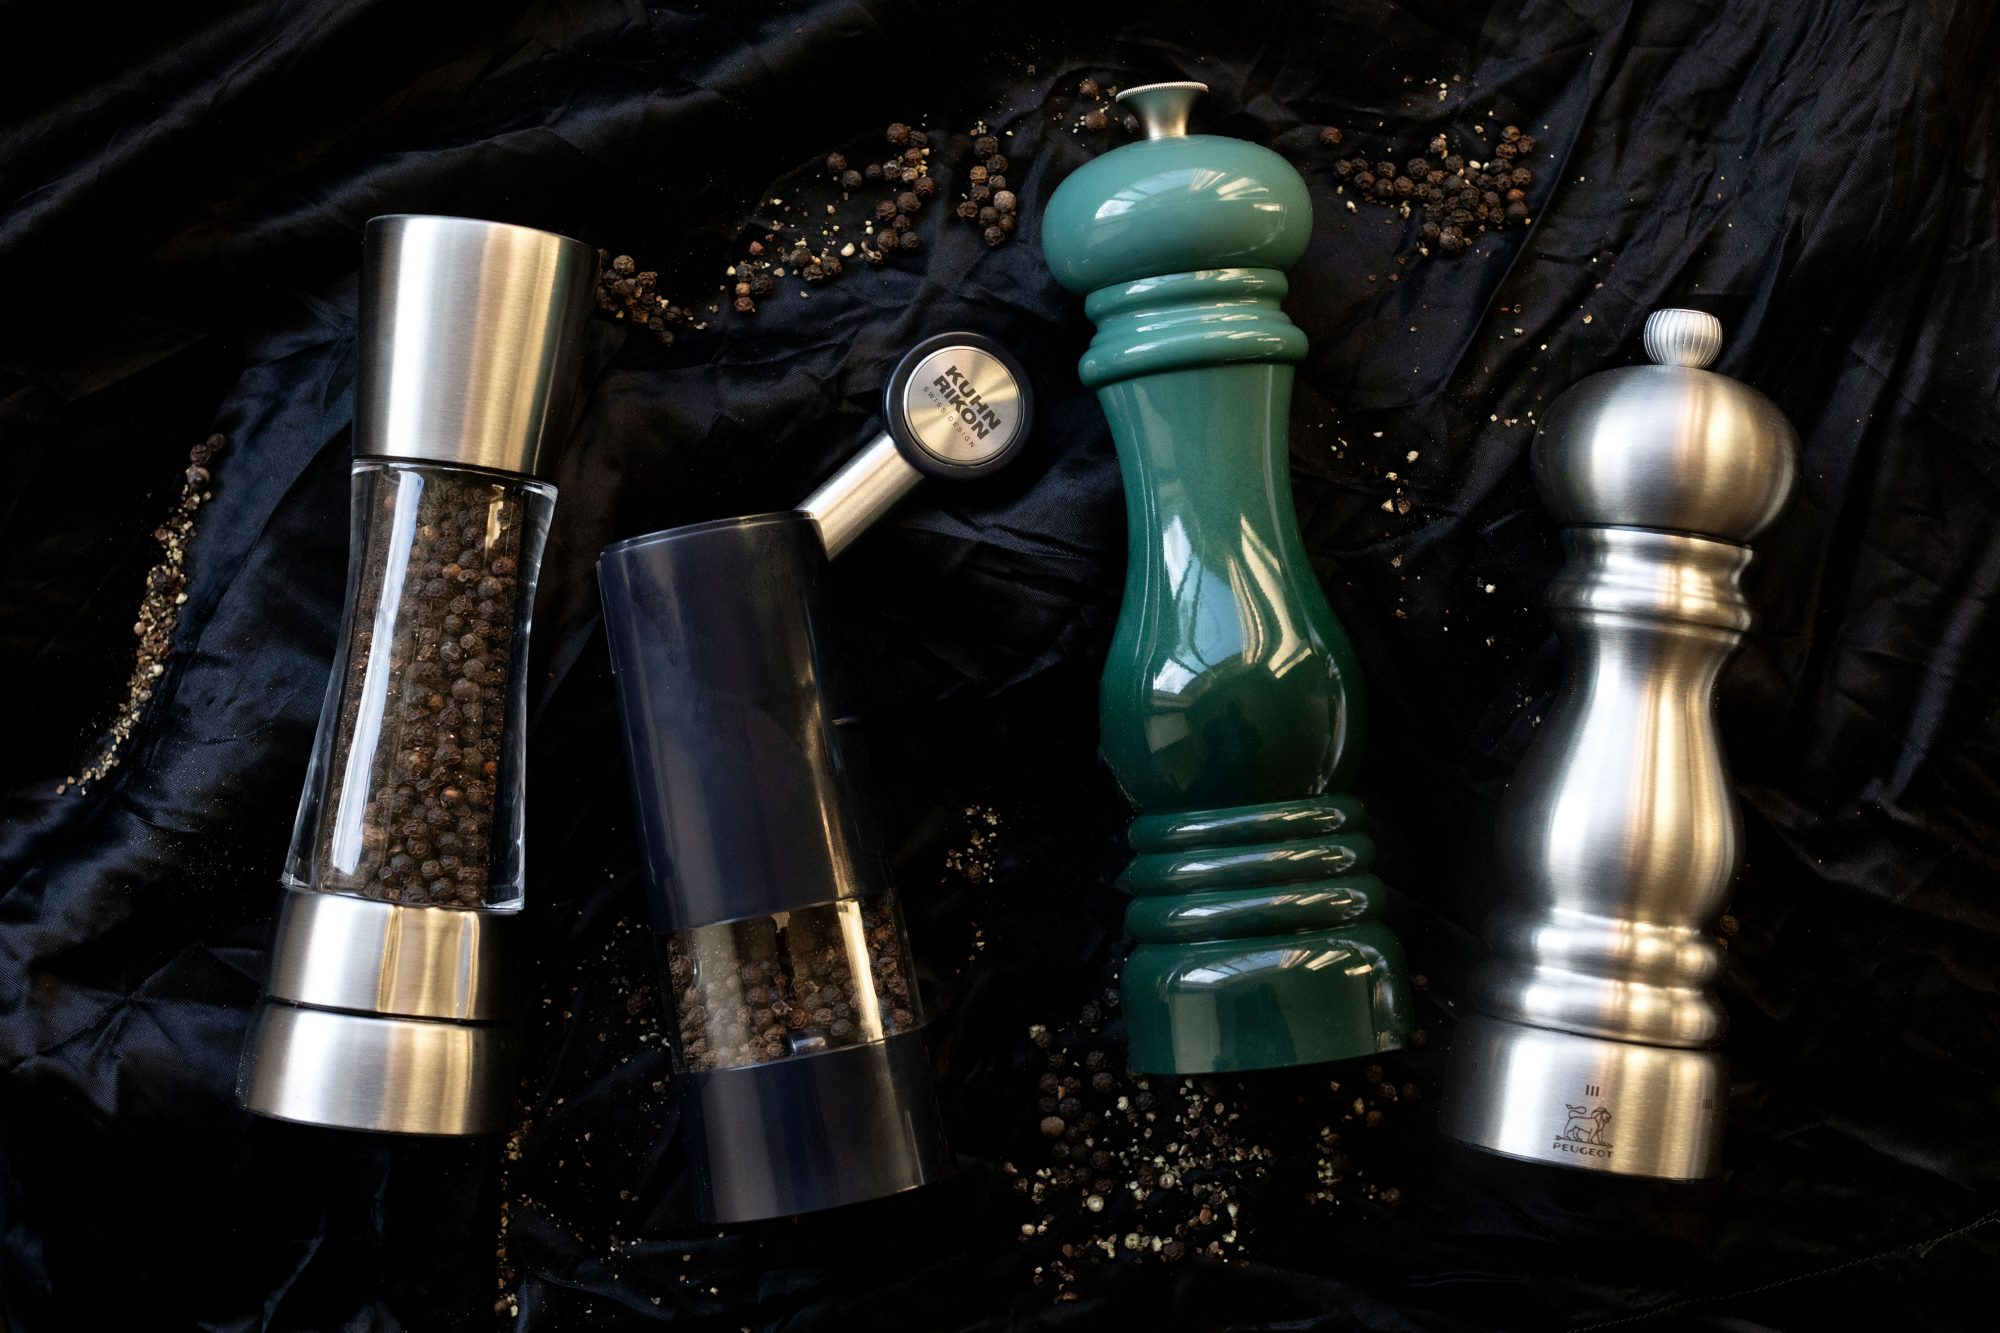 Four pepper grinders on black sheet with loose peppercorn